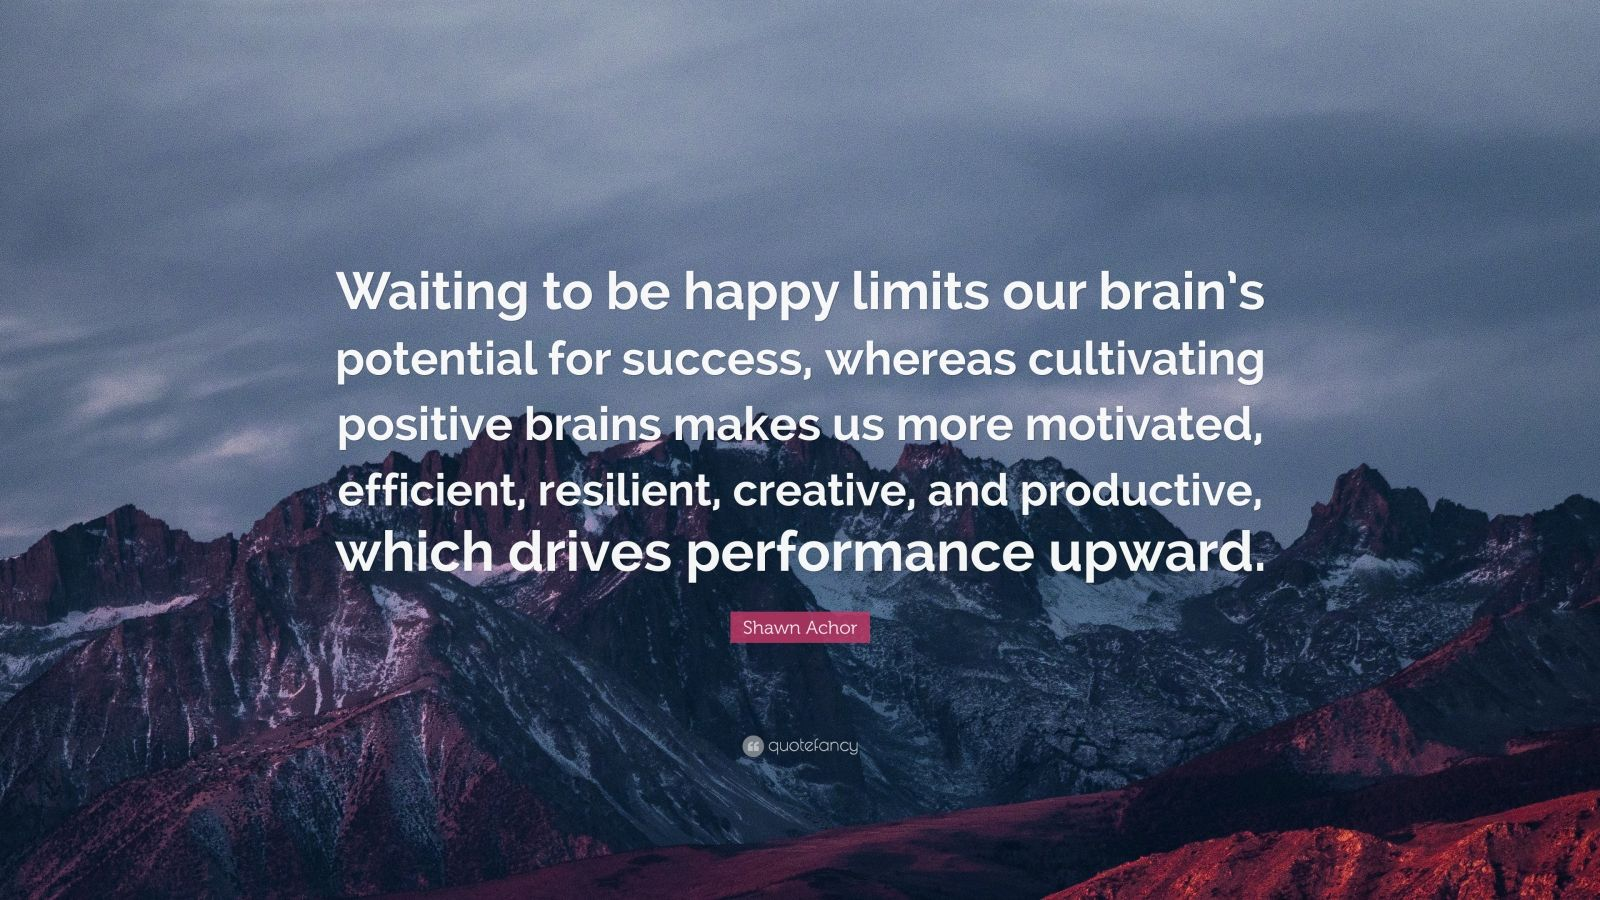 """Shawn Achor Quote: """"Waiting to be happy limits our brain's potential for success, whereas cultivating positive brains makes us more motivated, efficient, resilient, creative, and productive, which drives performance upward."""""""